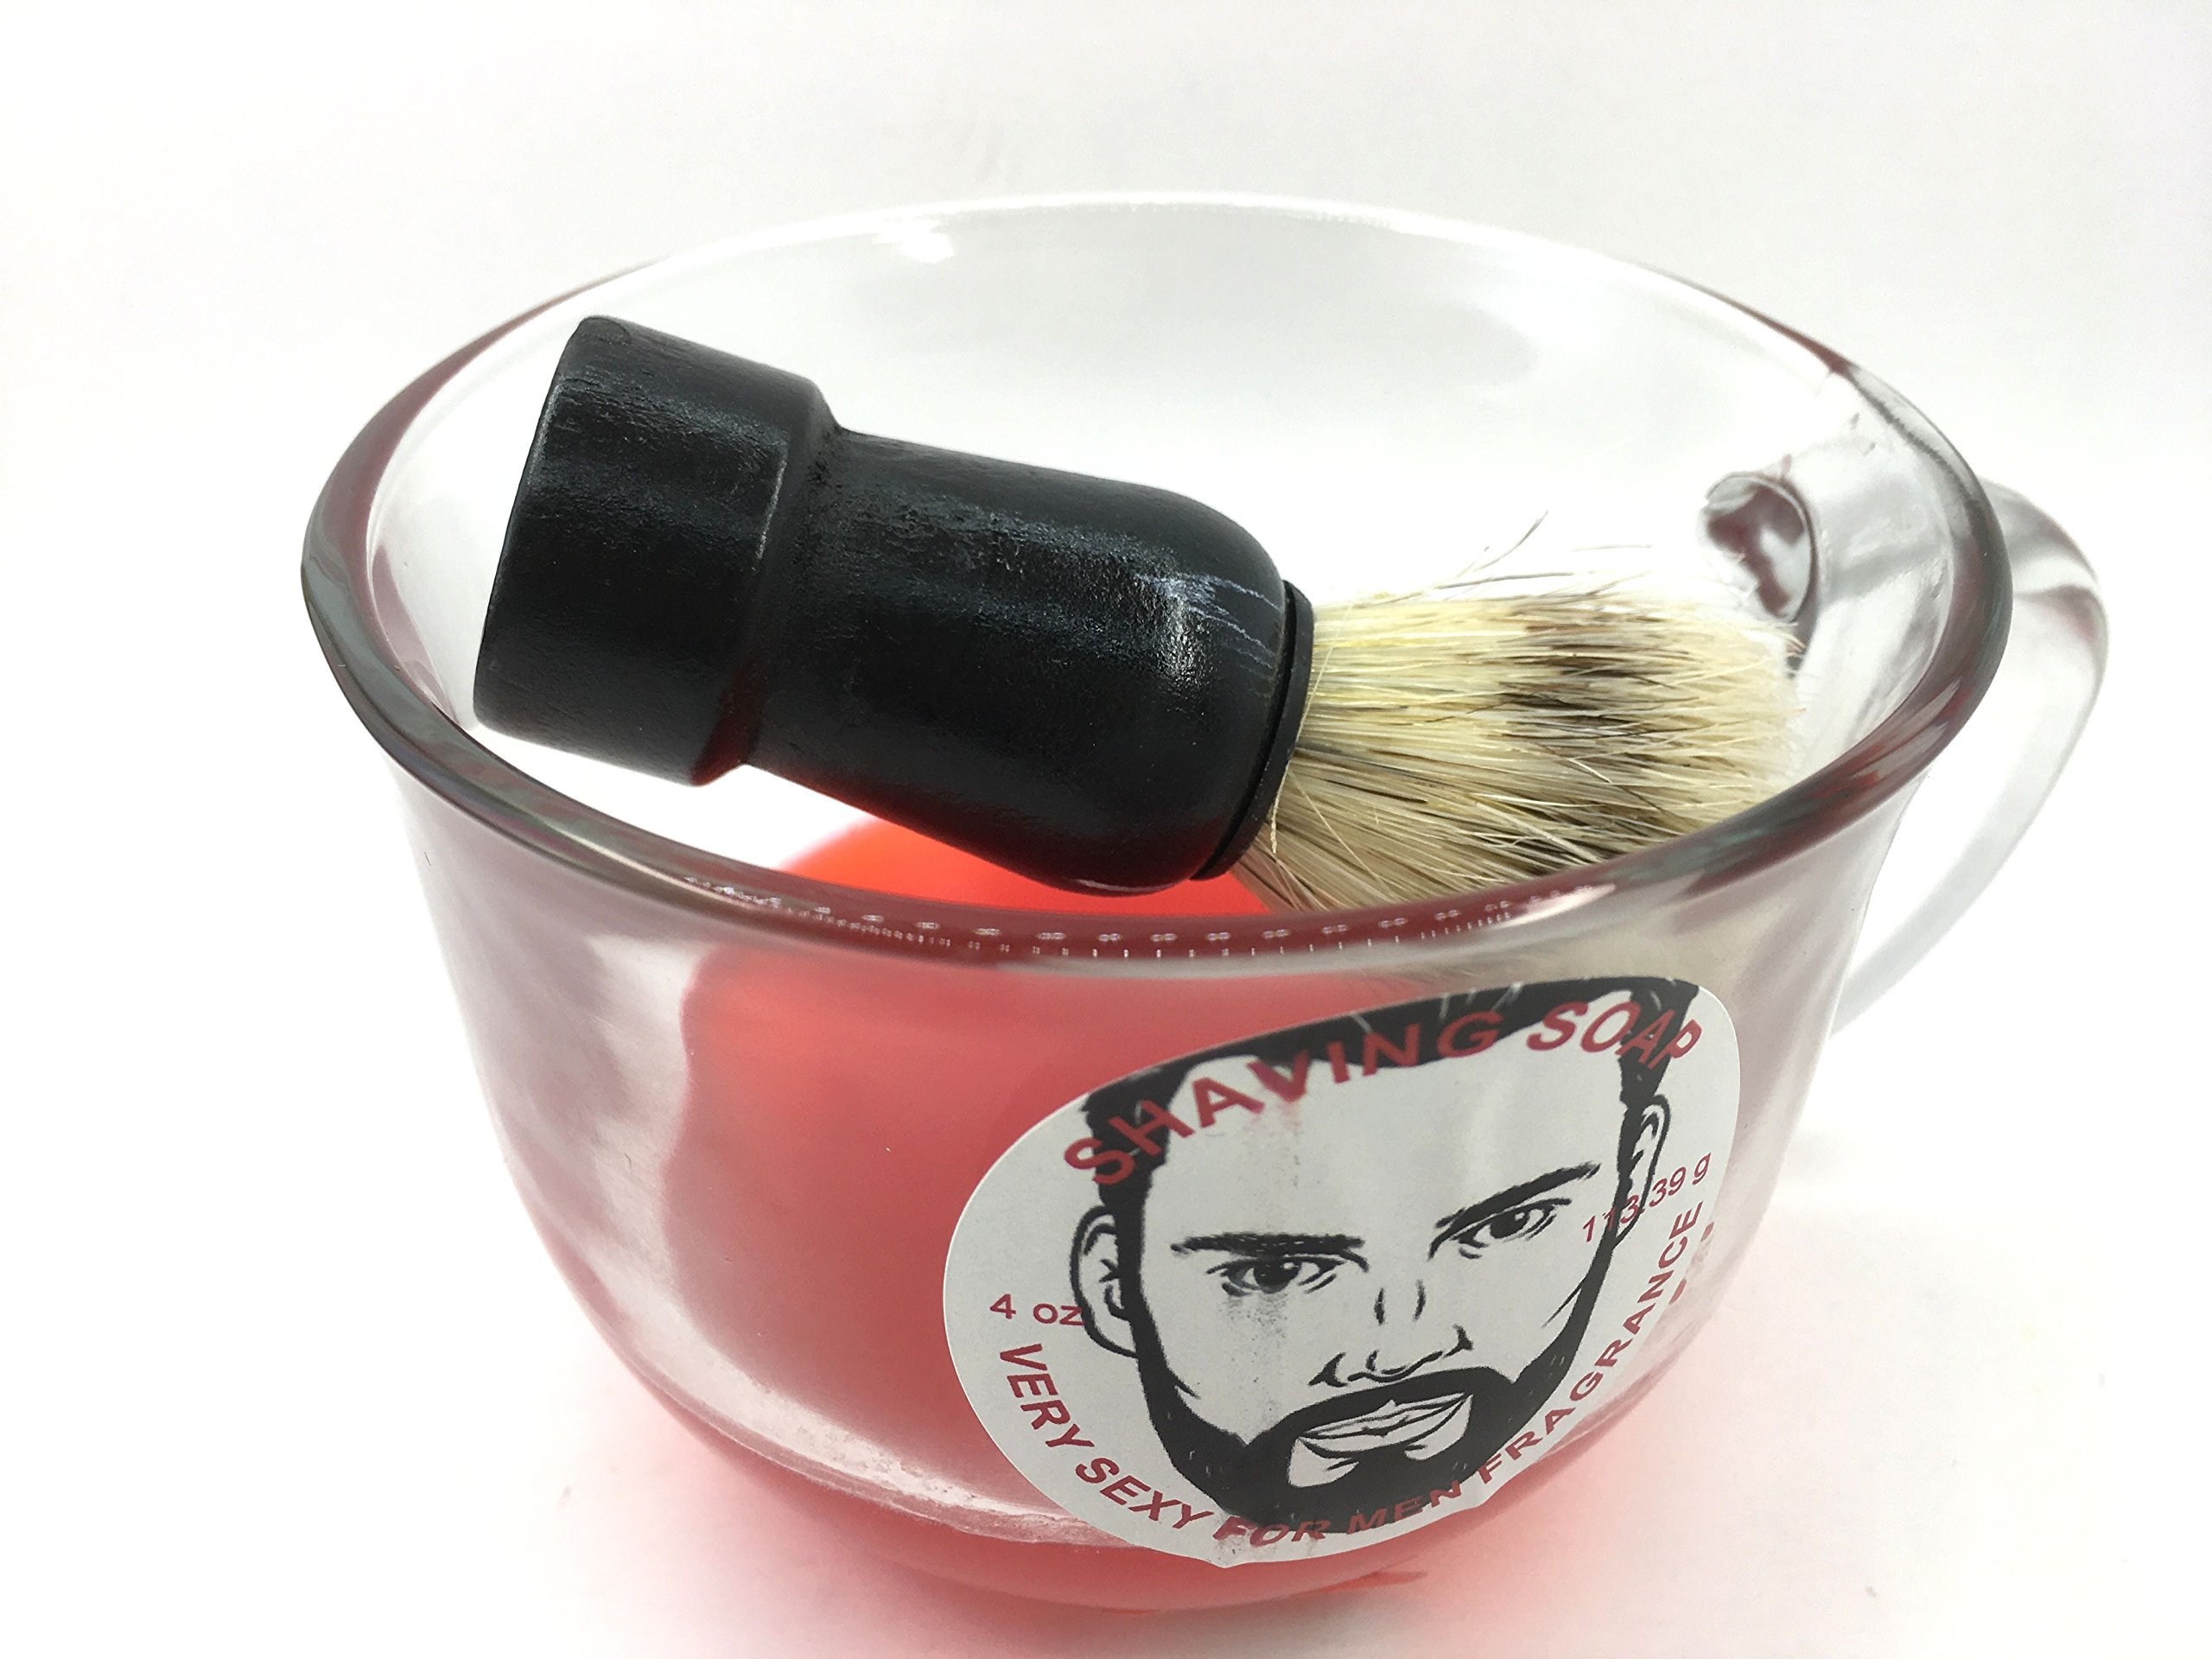 Shaving soap and brush set 4 oz Very Sexy Type fragrance